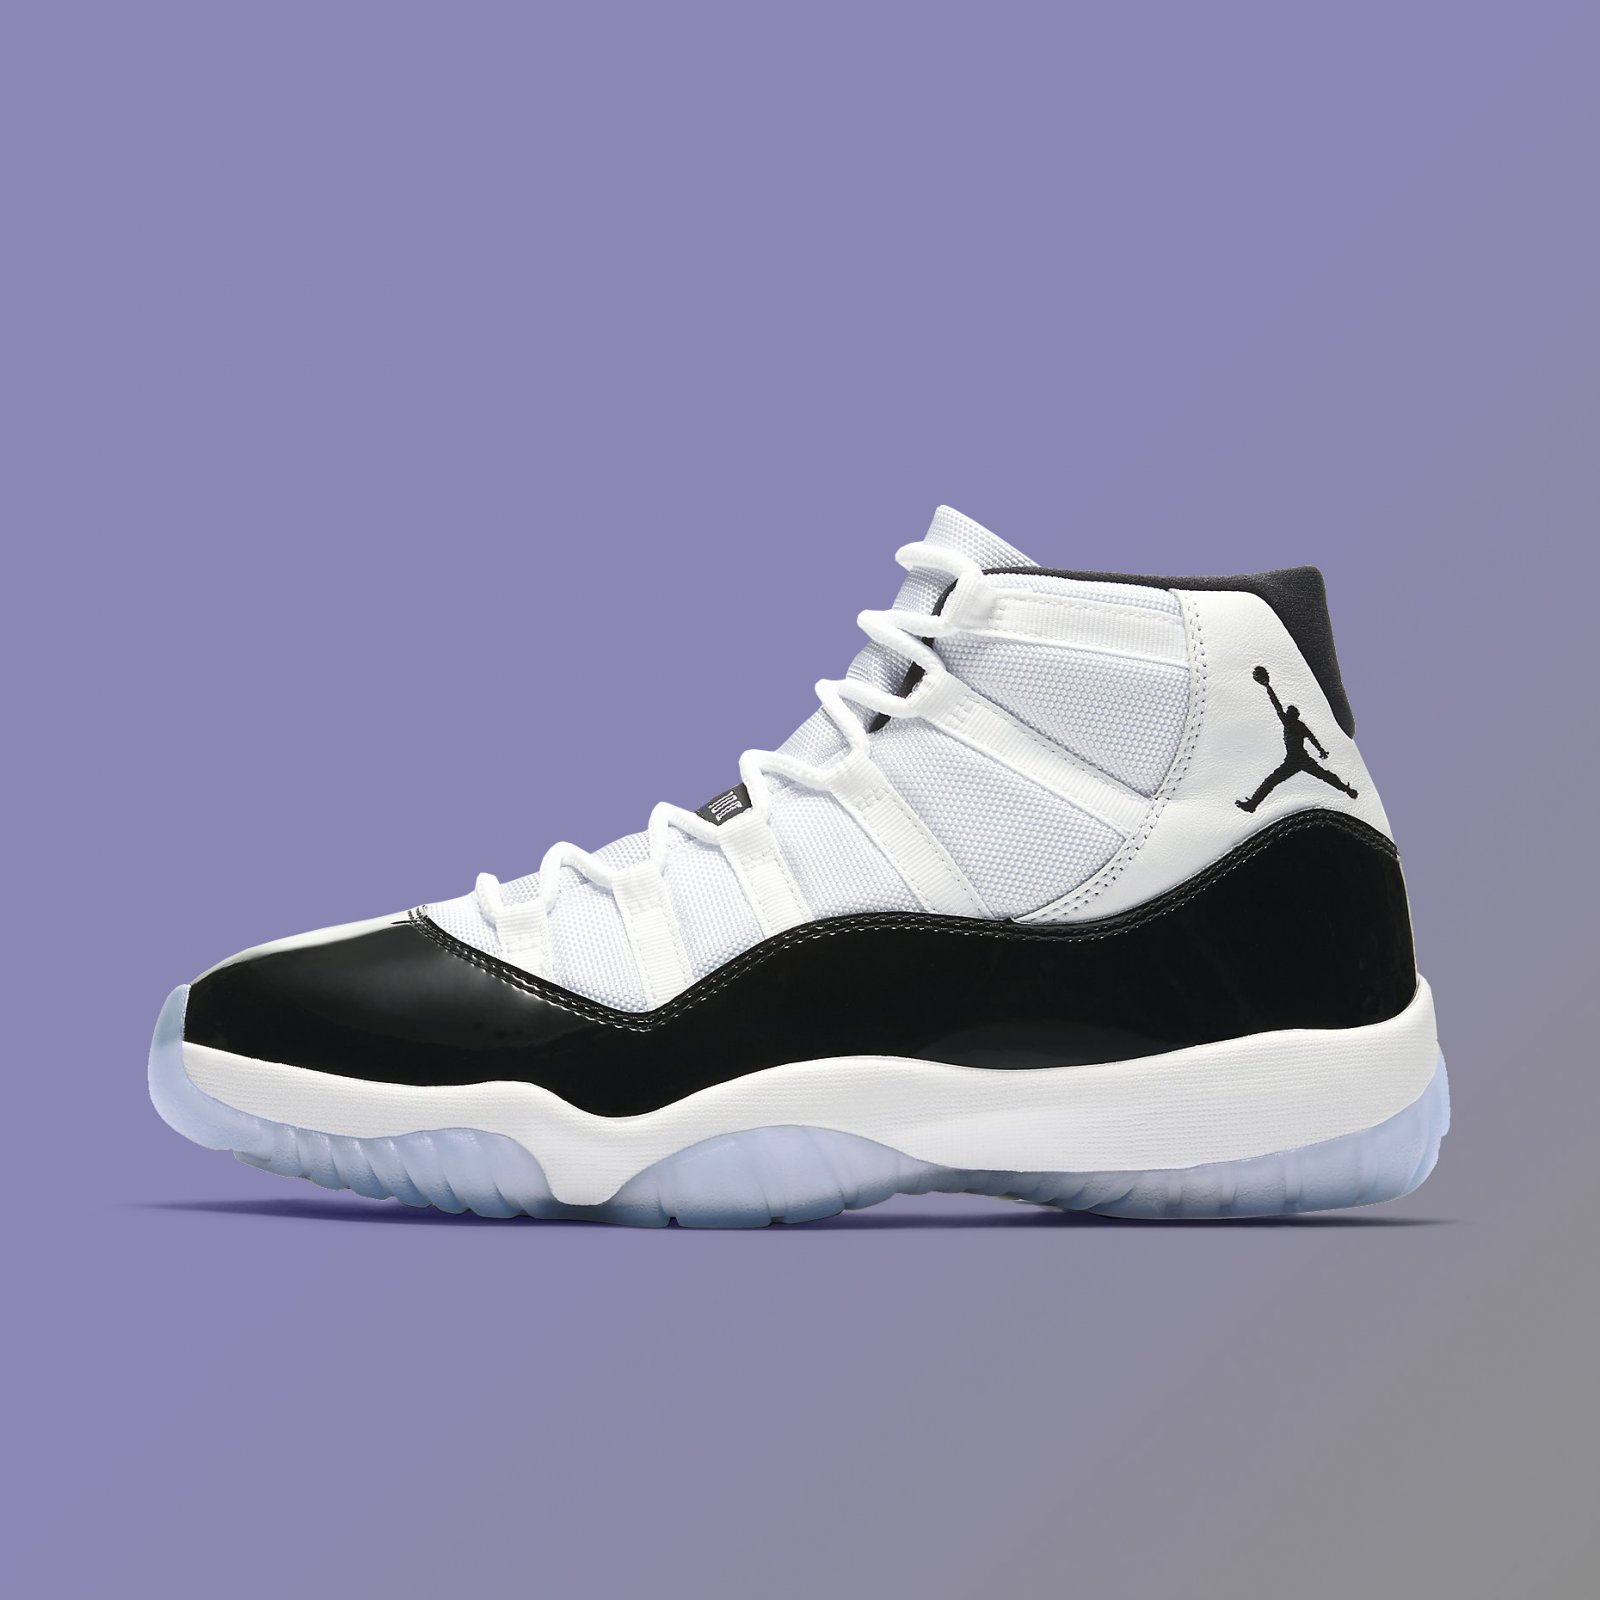 dd2cc14344a0 Details about Air Jordan 11 Retro White Concord Black 2018 OG XI Nike Men s  Kid s Sneakers DS